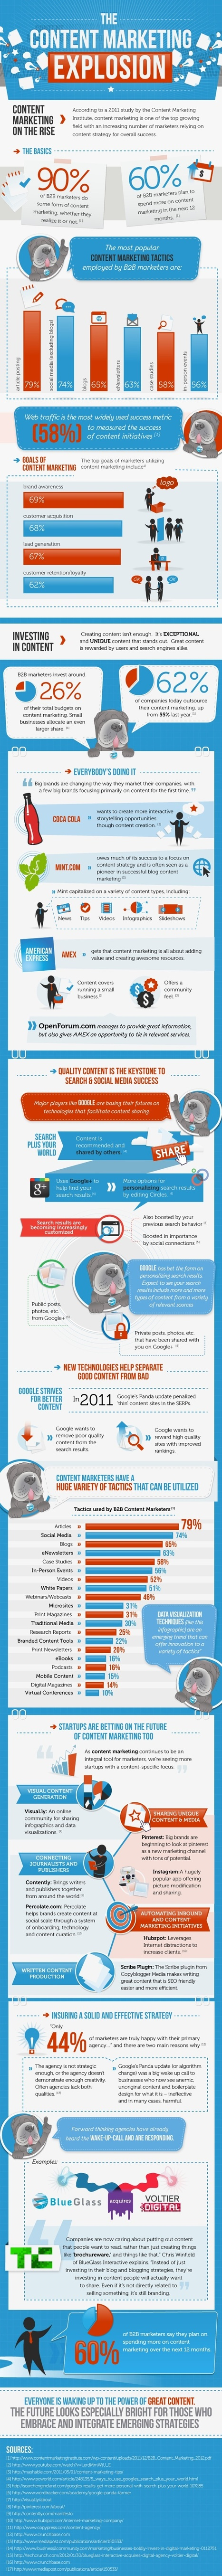 What You Need to Know About Content Marketing in 2012 [INFOGRAPHIC] | All Things Curation | Scoop.it